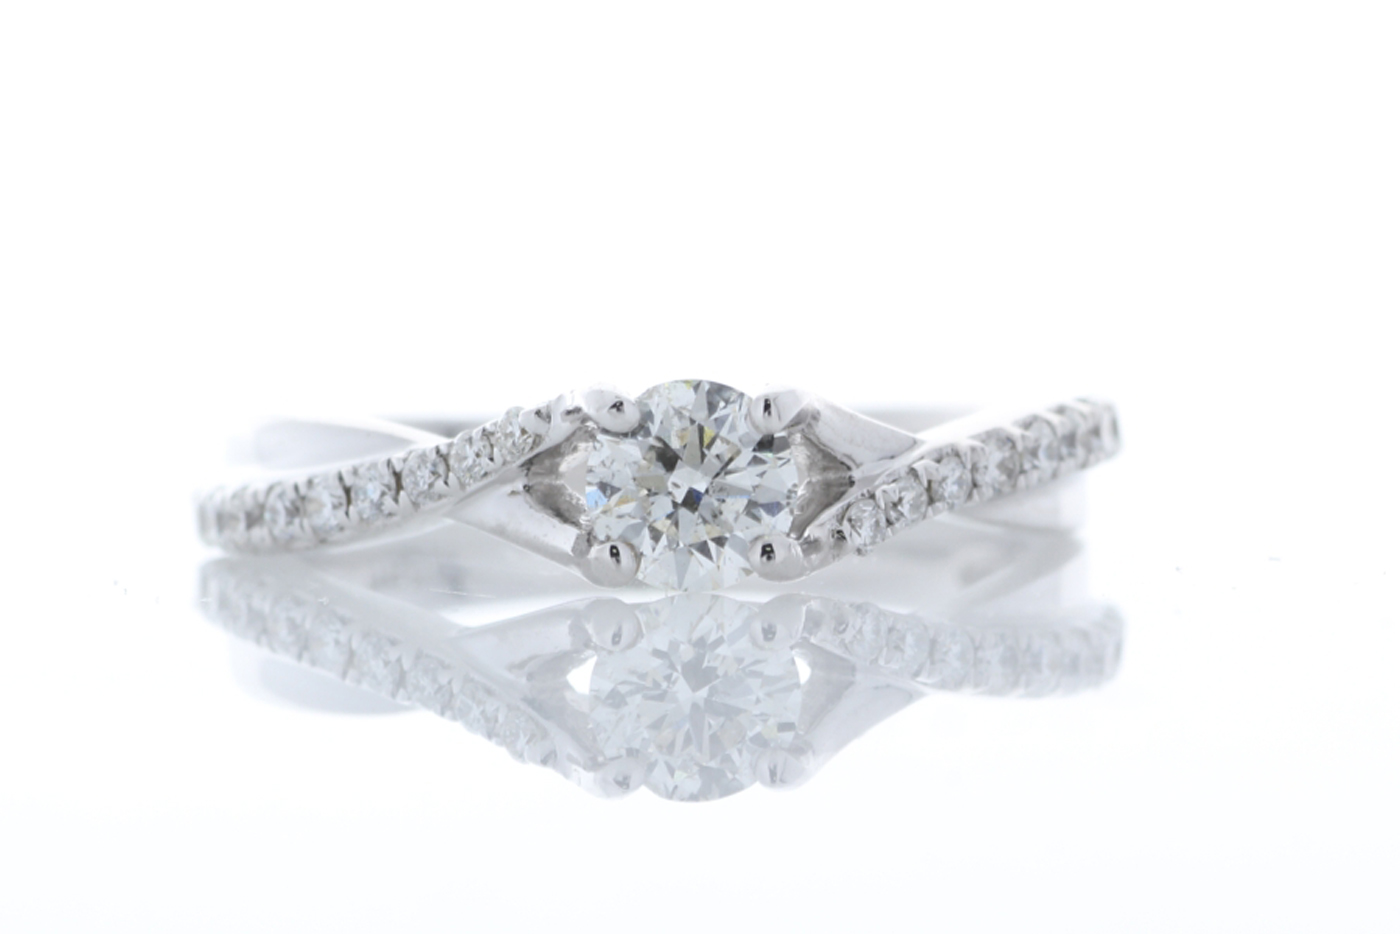 Lot 23 - 18k White Gold Single Stone Claw Set With Stone Set Shoulders Diamond Ring 0.50 (0.35)